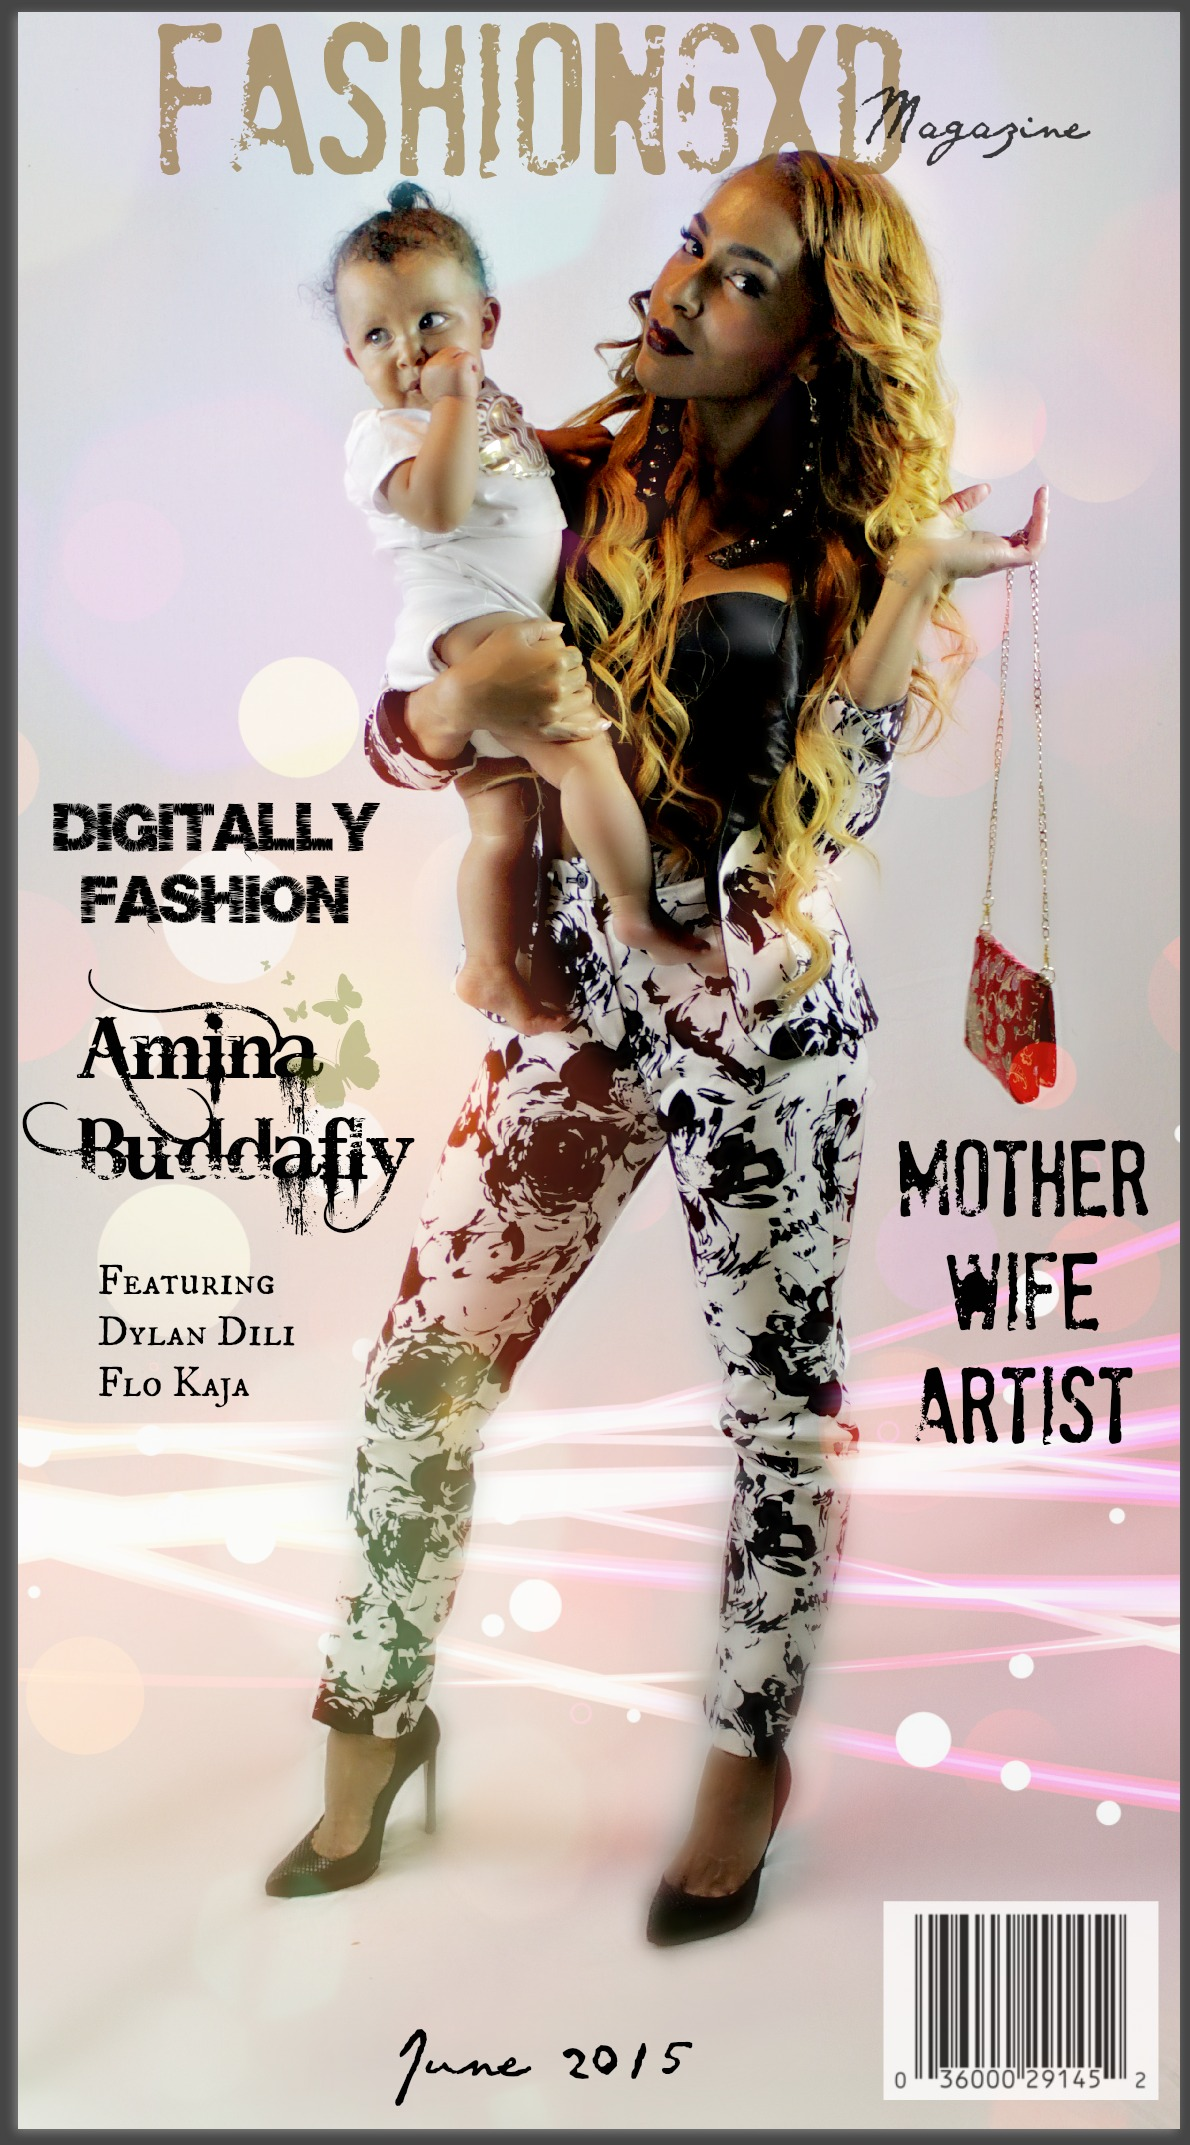 Aminabudda fly fashion gxd magazine cover.jpg